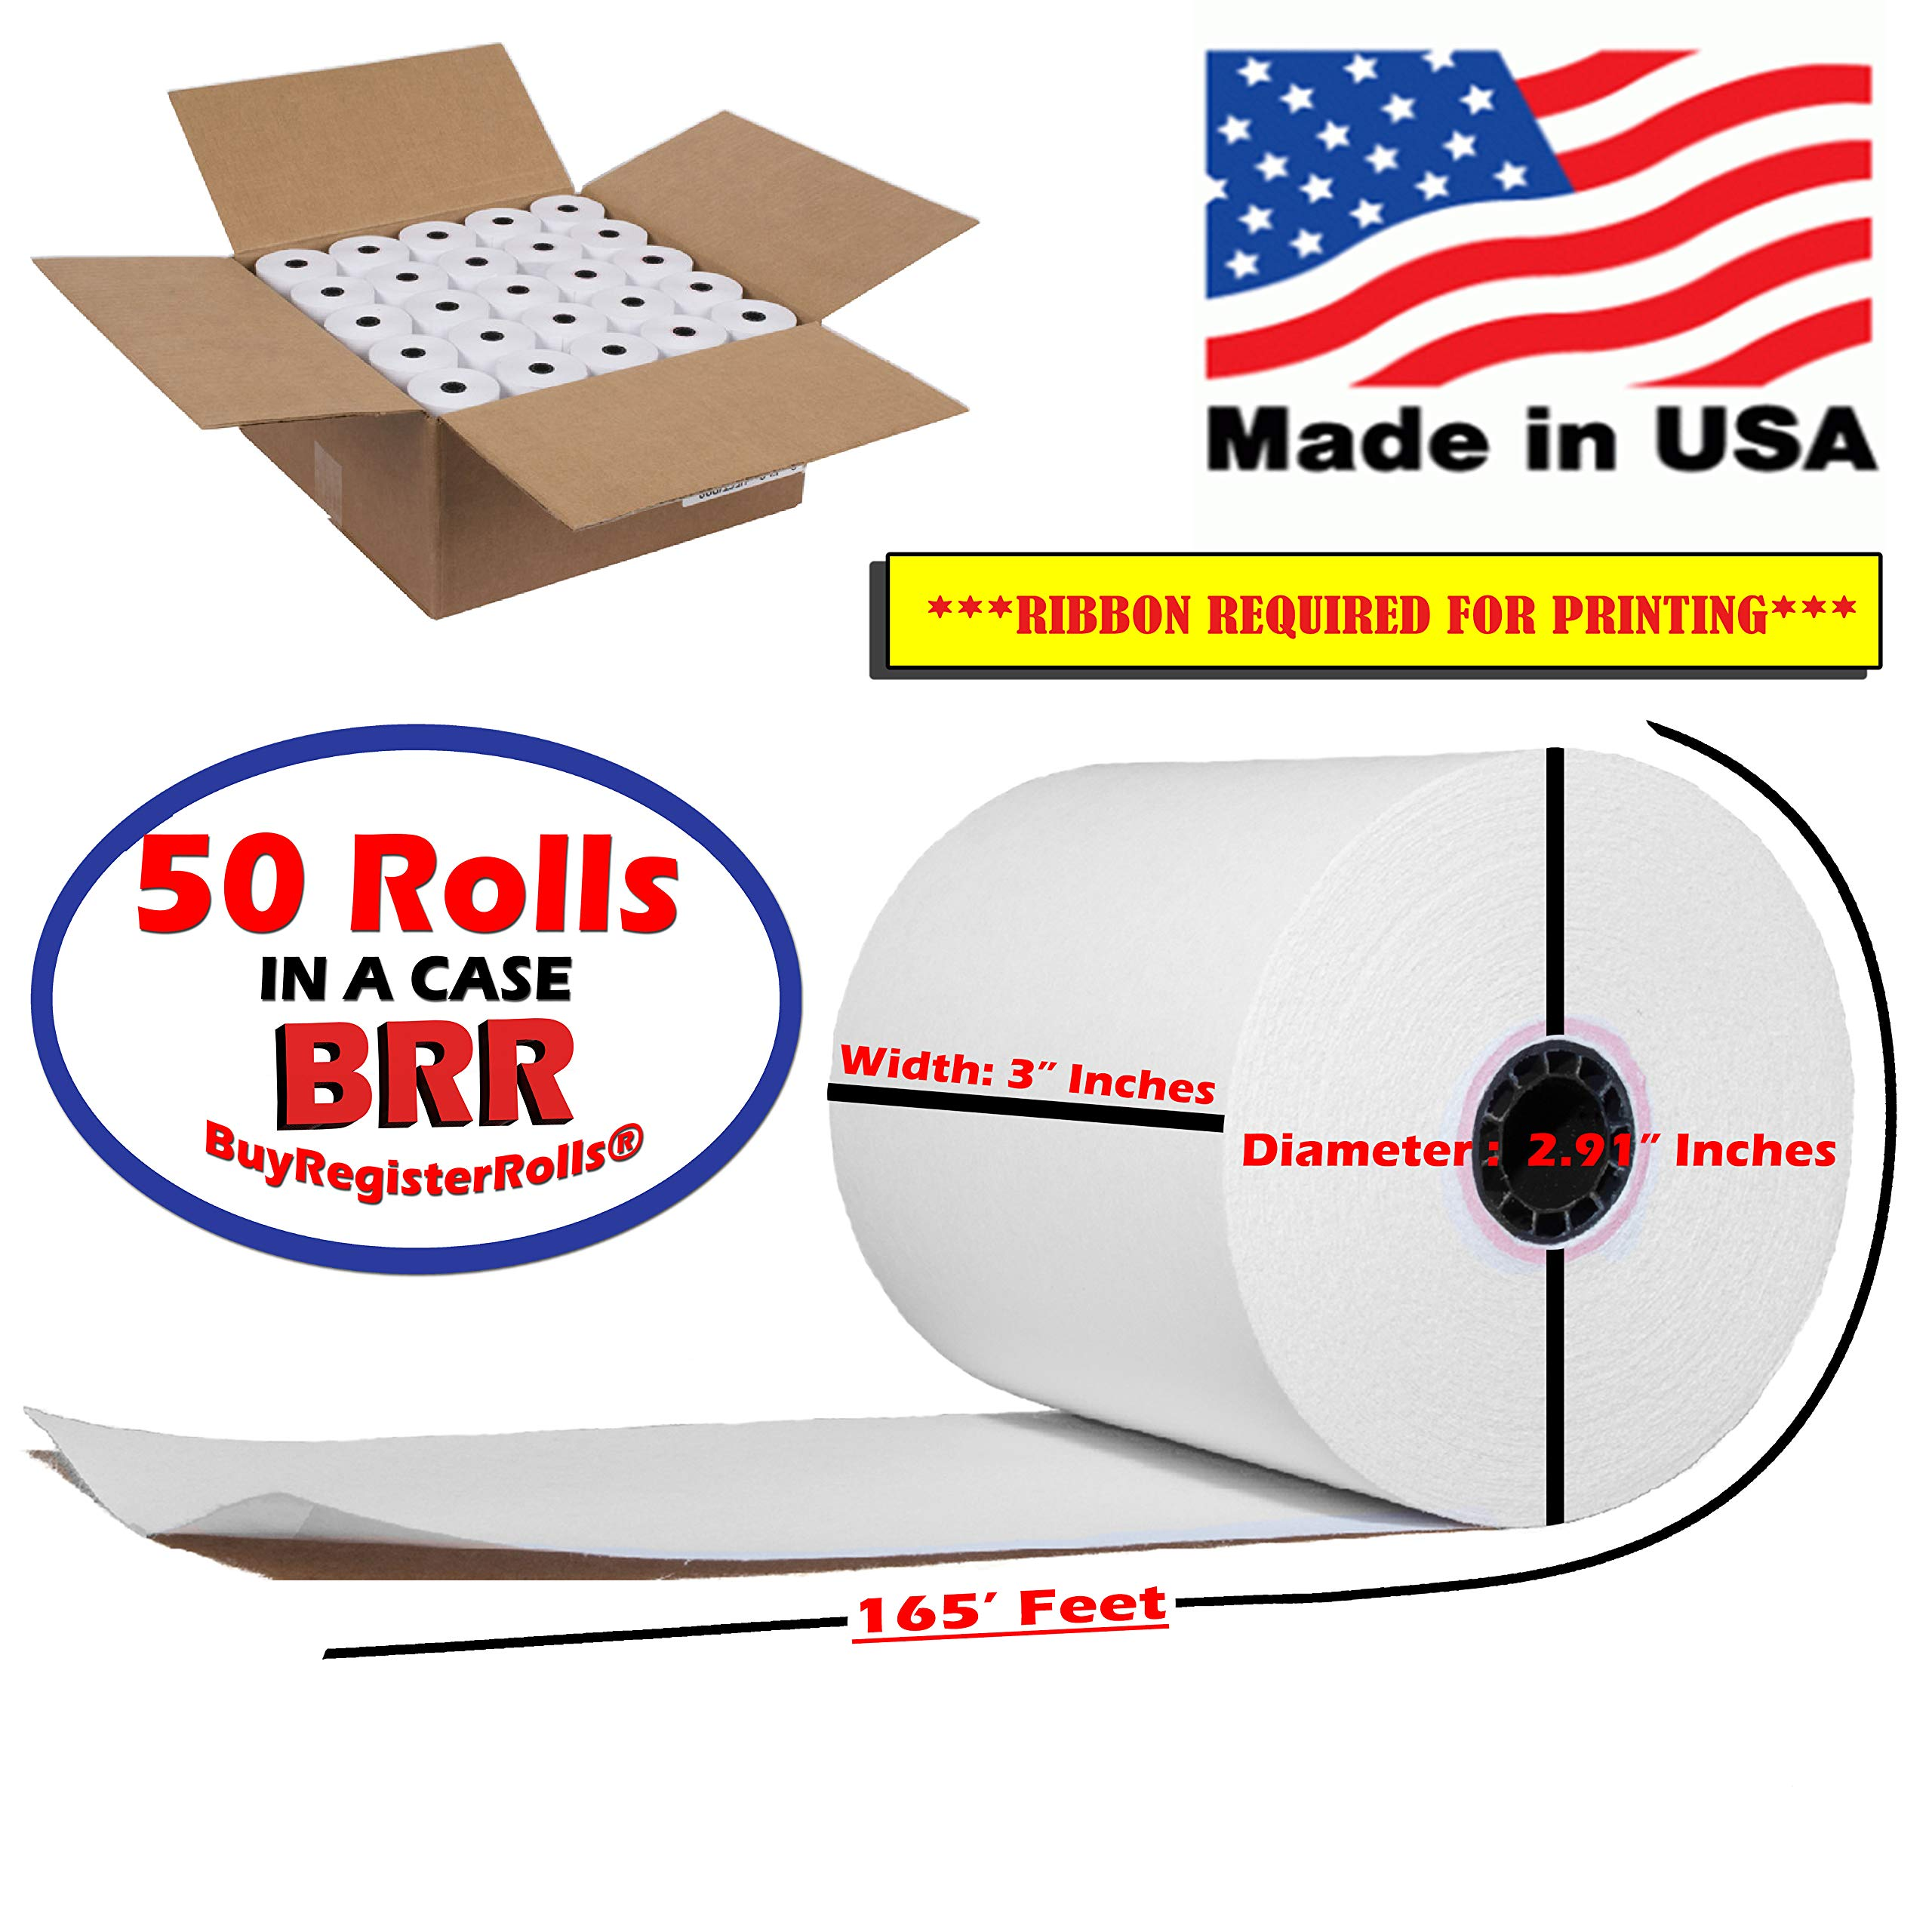 50 Rolls 3'' x 165' 1-Ply Bond Premium Quality Blended Bond Receipt Paper POS Cash Register Made in USA from BuyRegisterRolls by BuyRegisterRolls